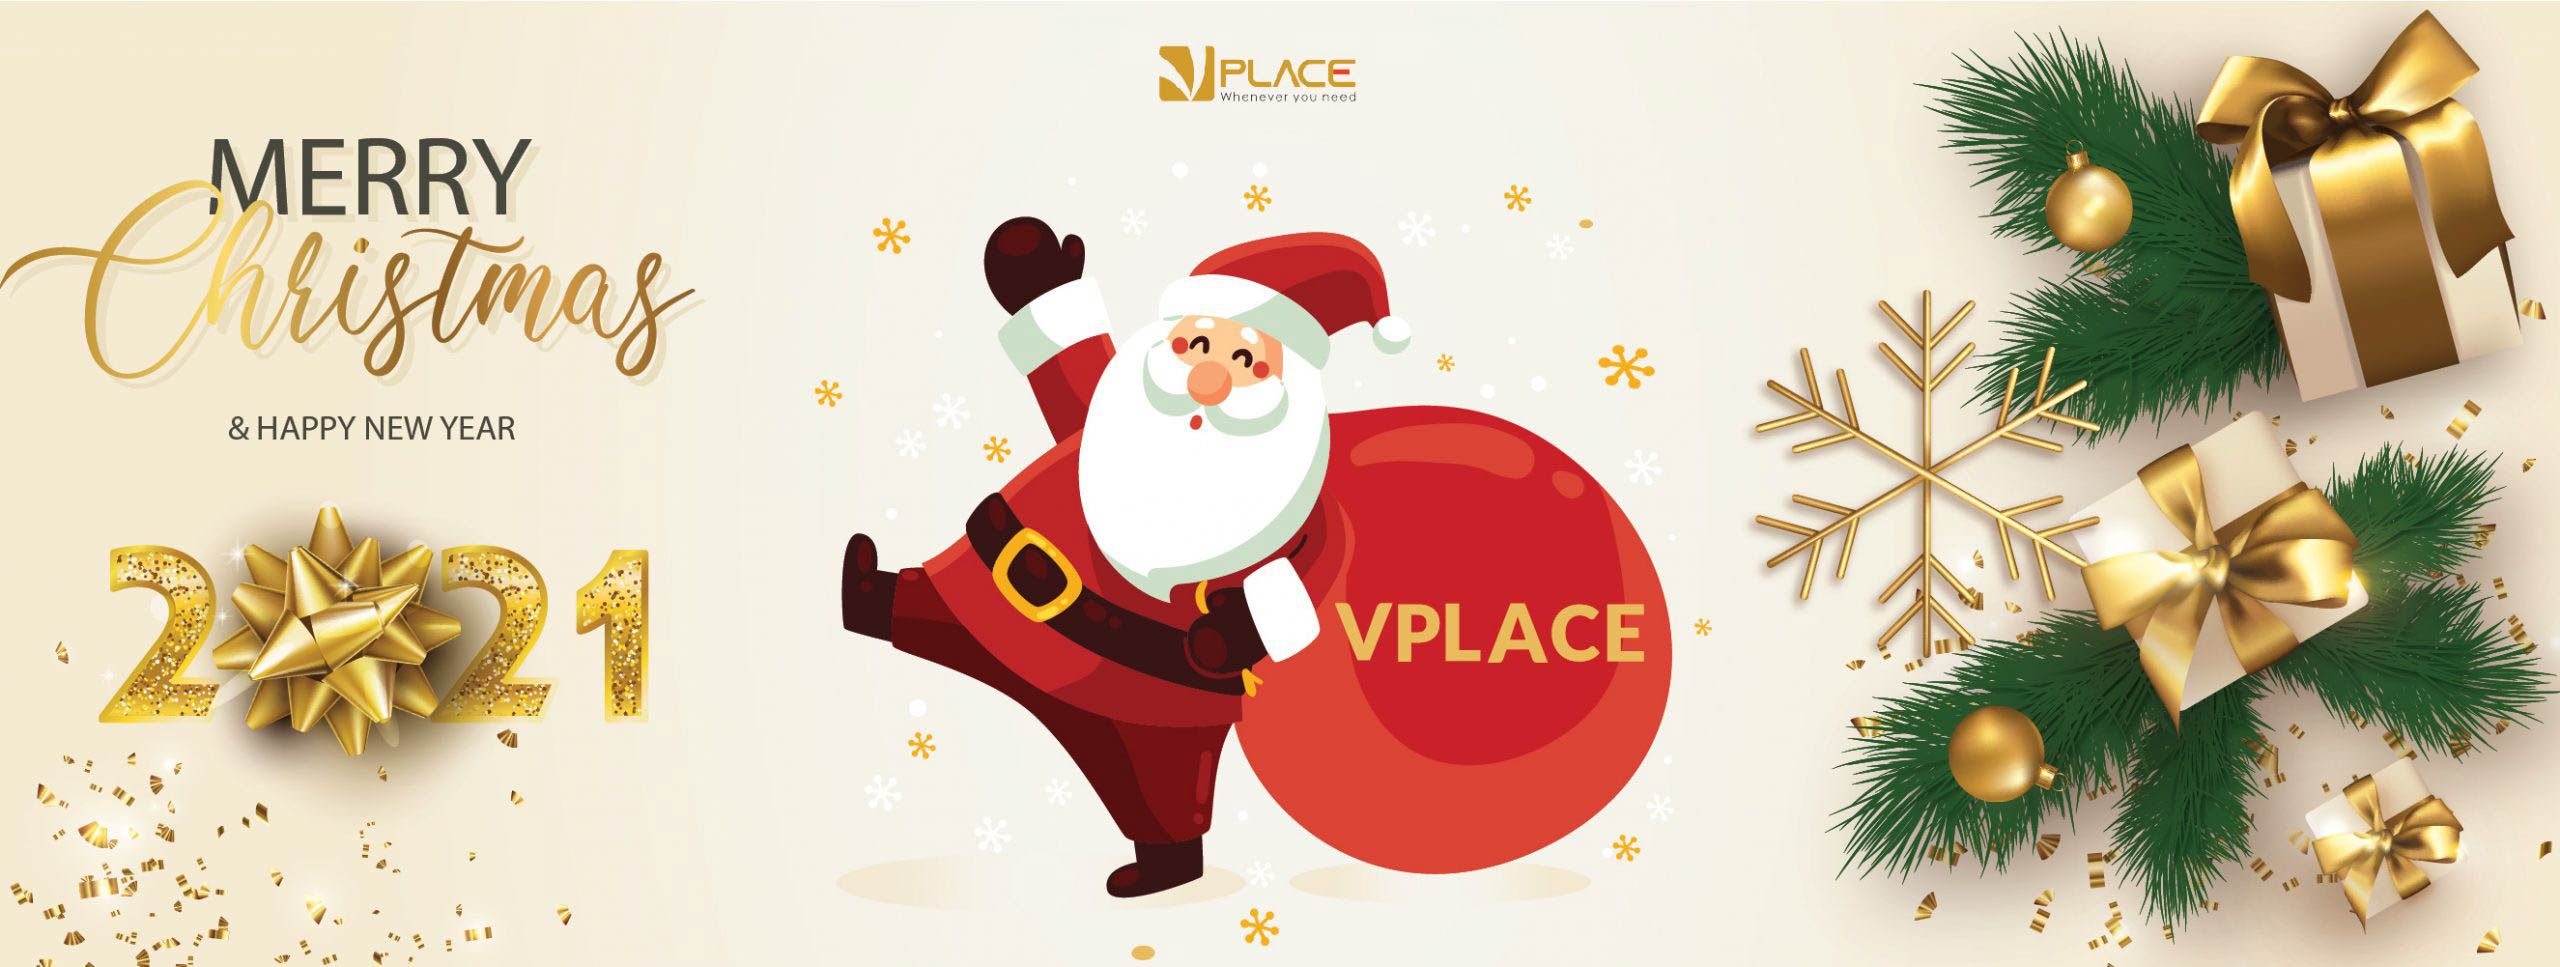 VPLACE Merry Christmas and Happy New Year